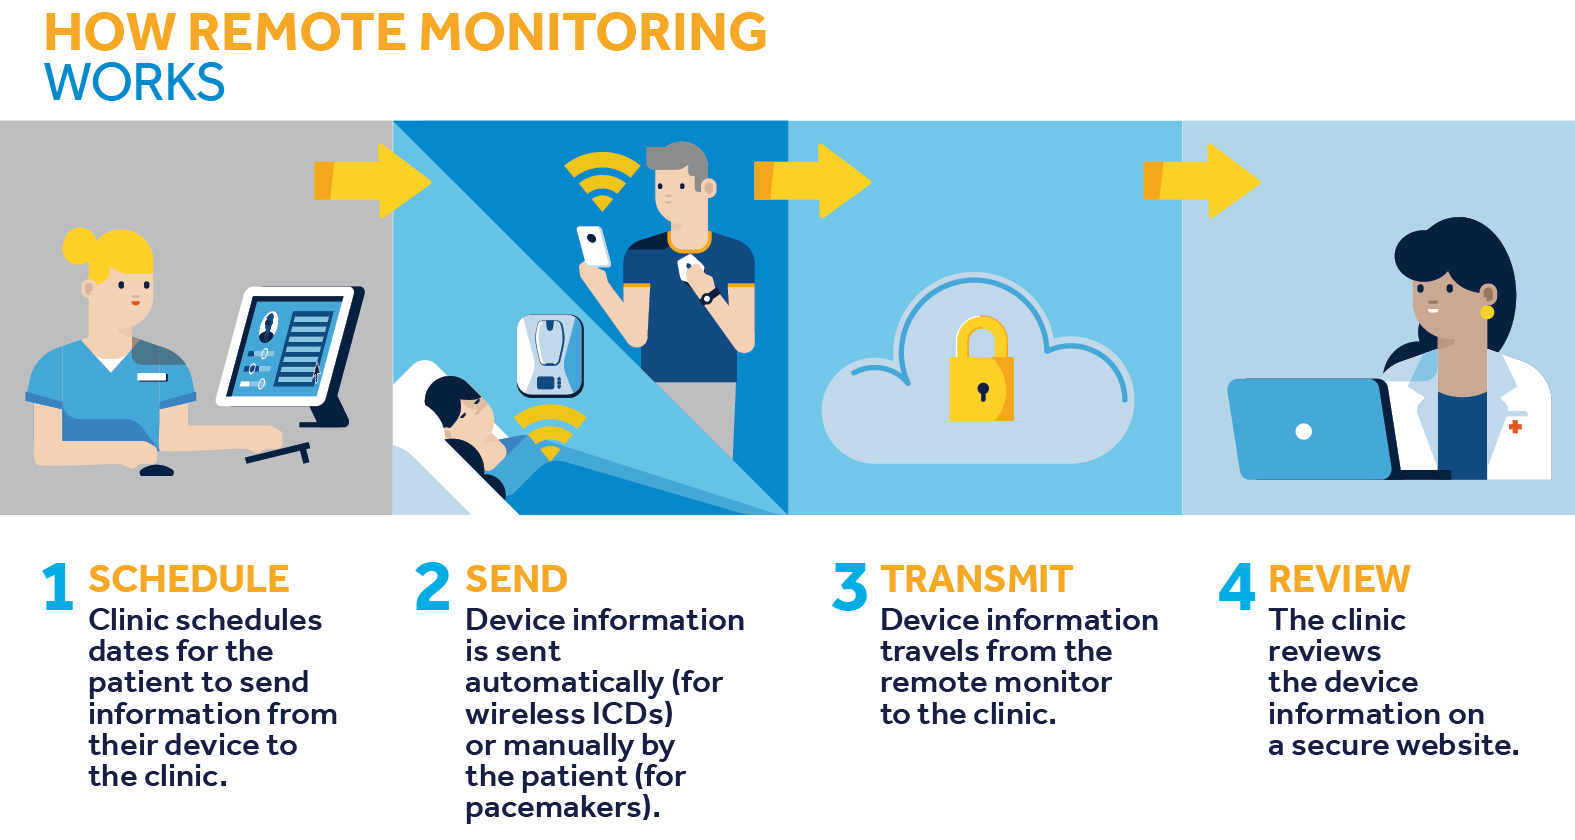 illustration of how remote monitoring works